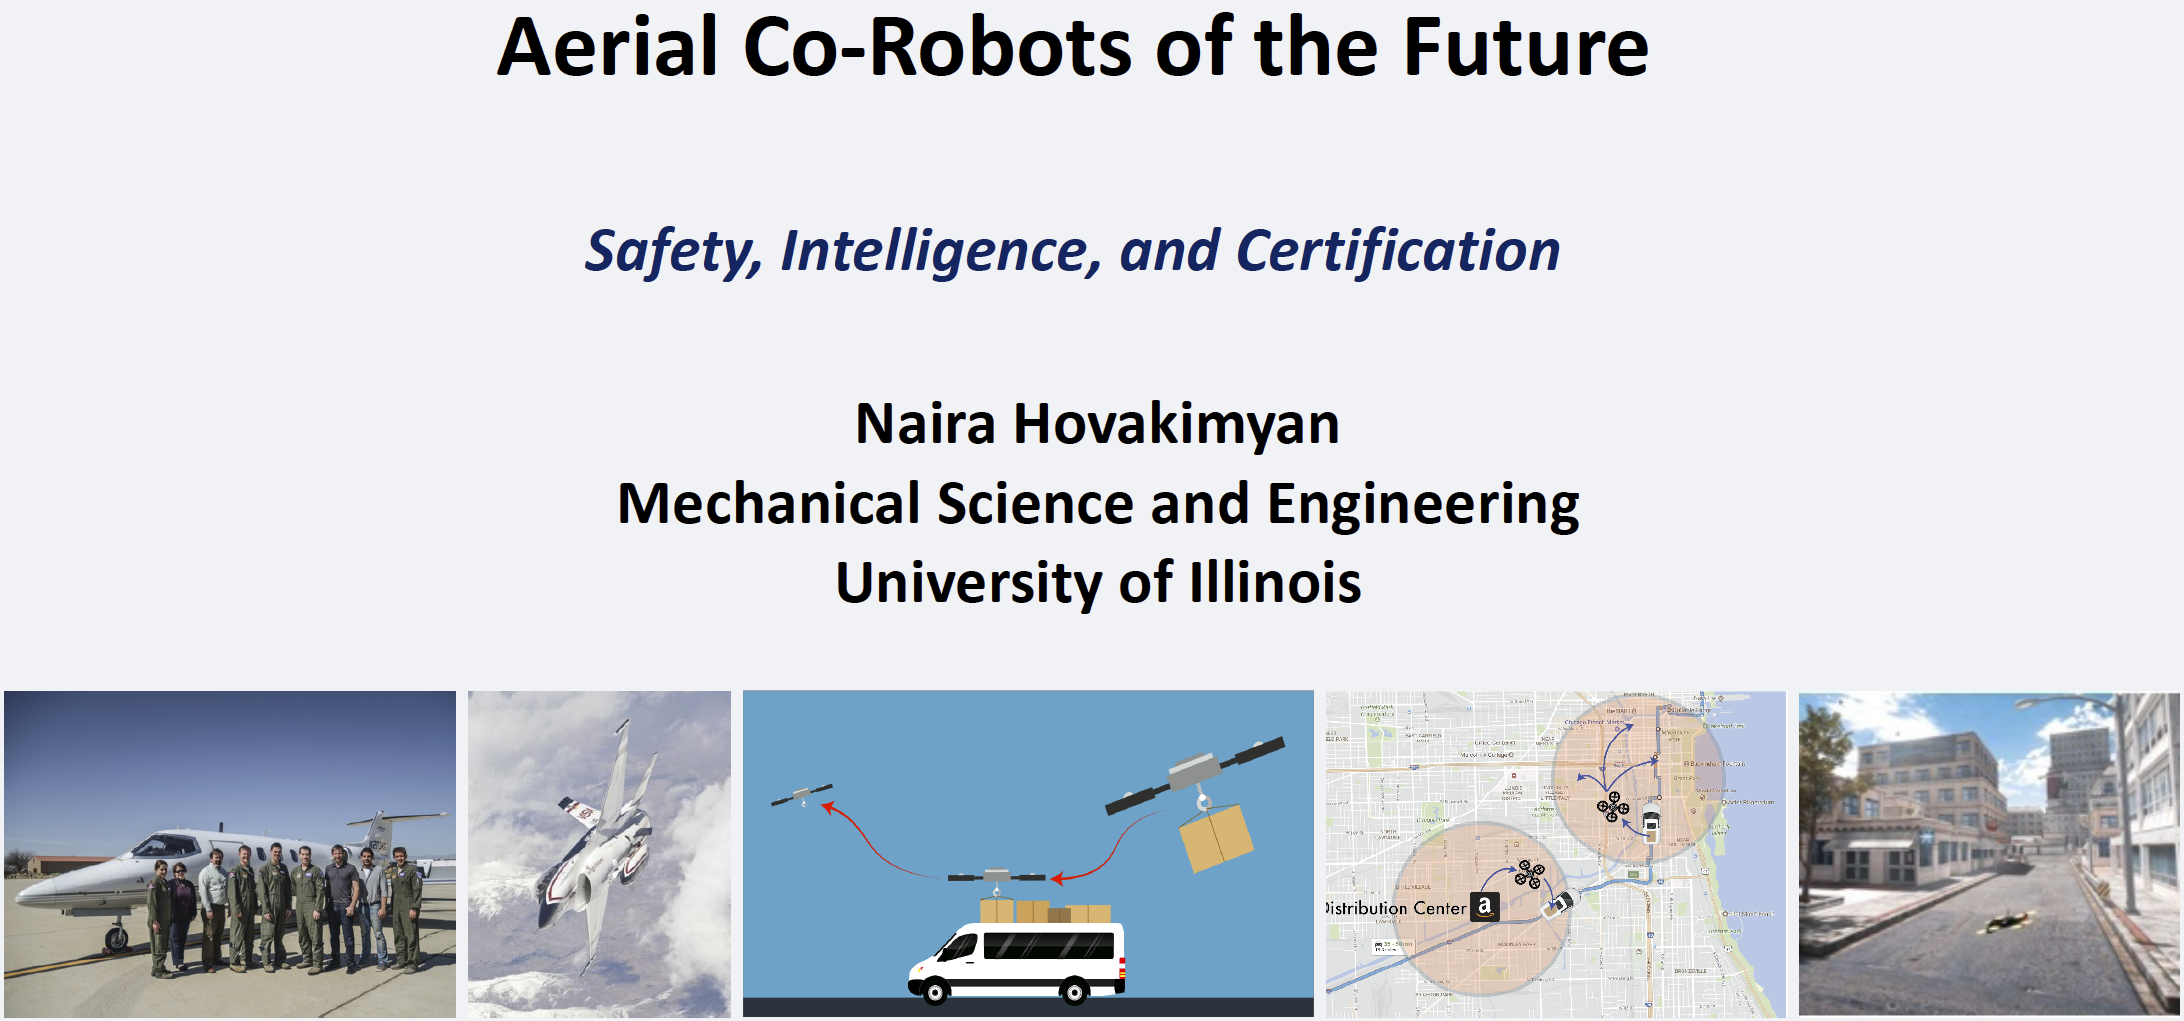 Video: AIAA 2019 GNC Conference Plenary Lecture given by Professor Hovakimyan